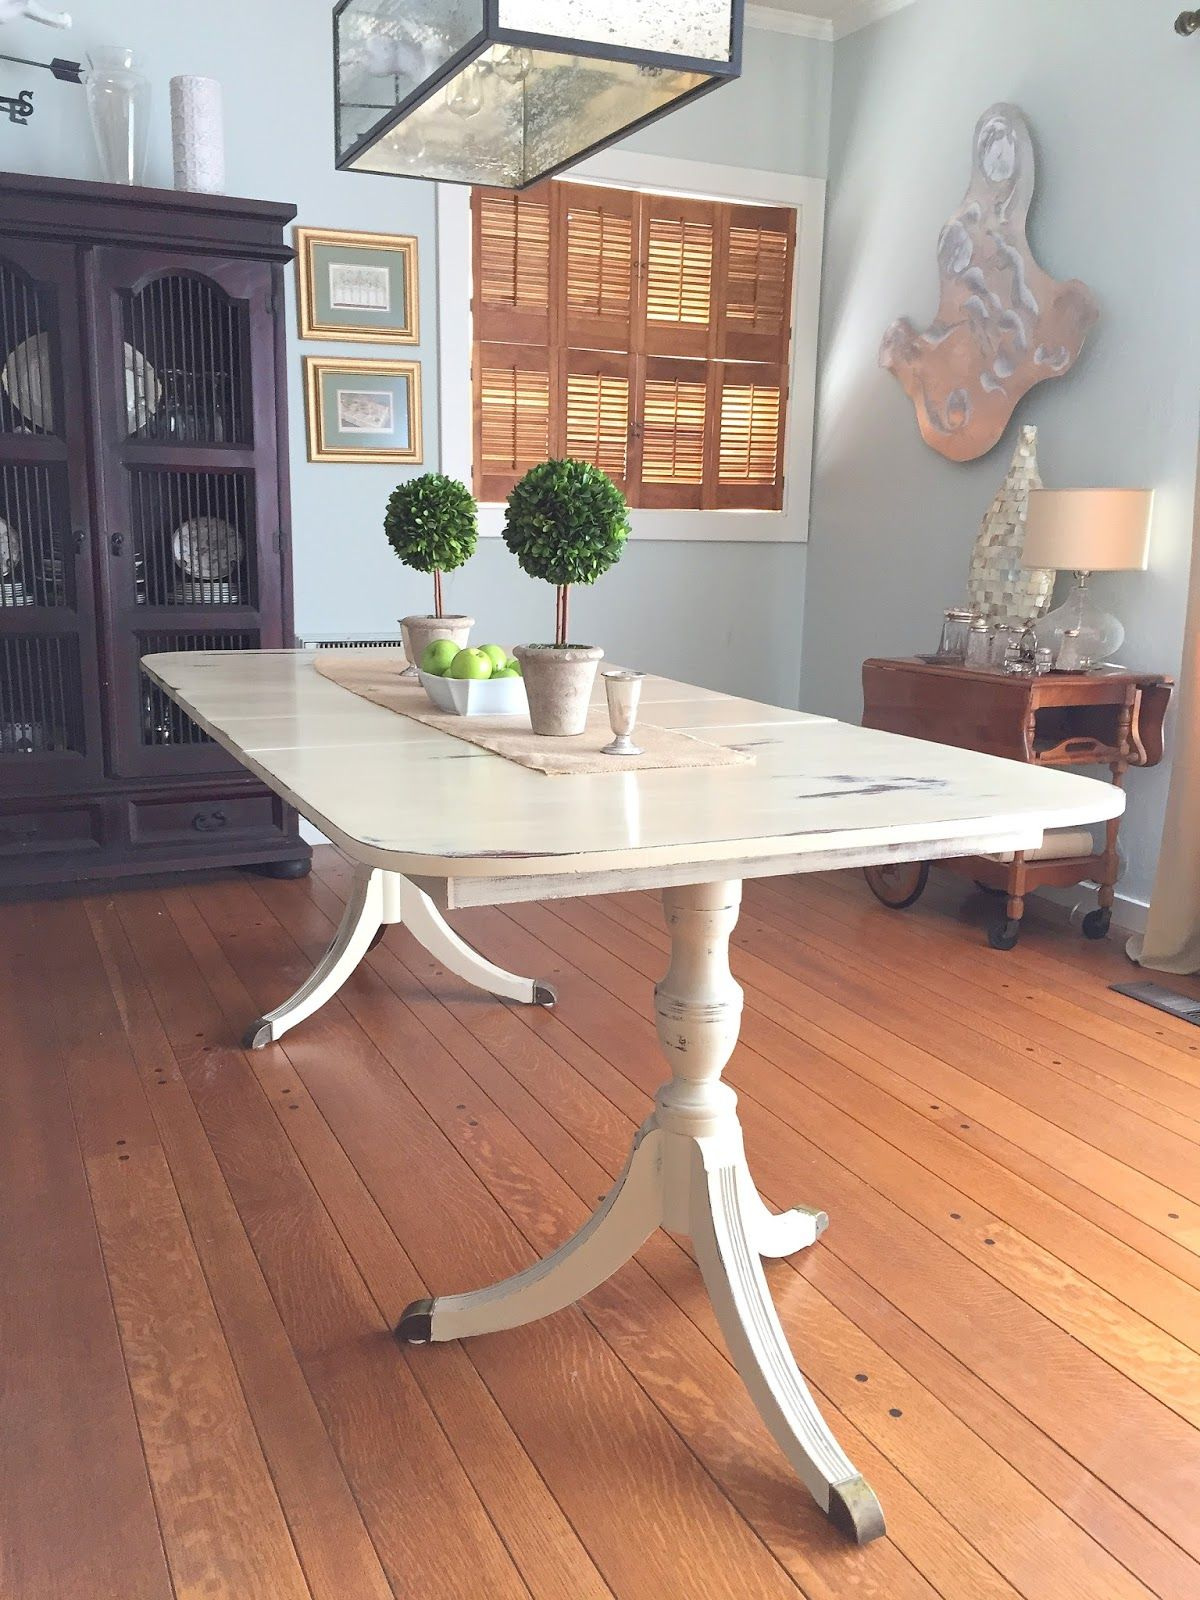 Duncan Phyfe Dining Table Painted With Annie Sloan Chalk Paint